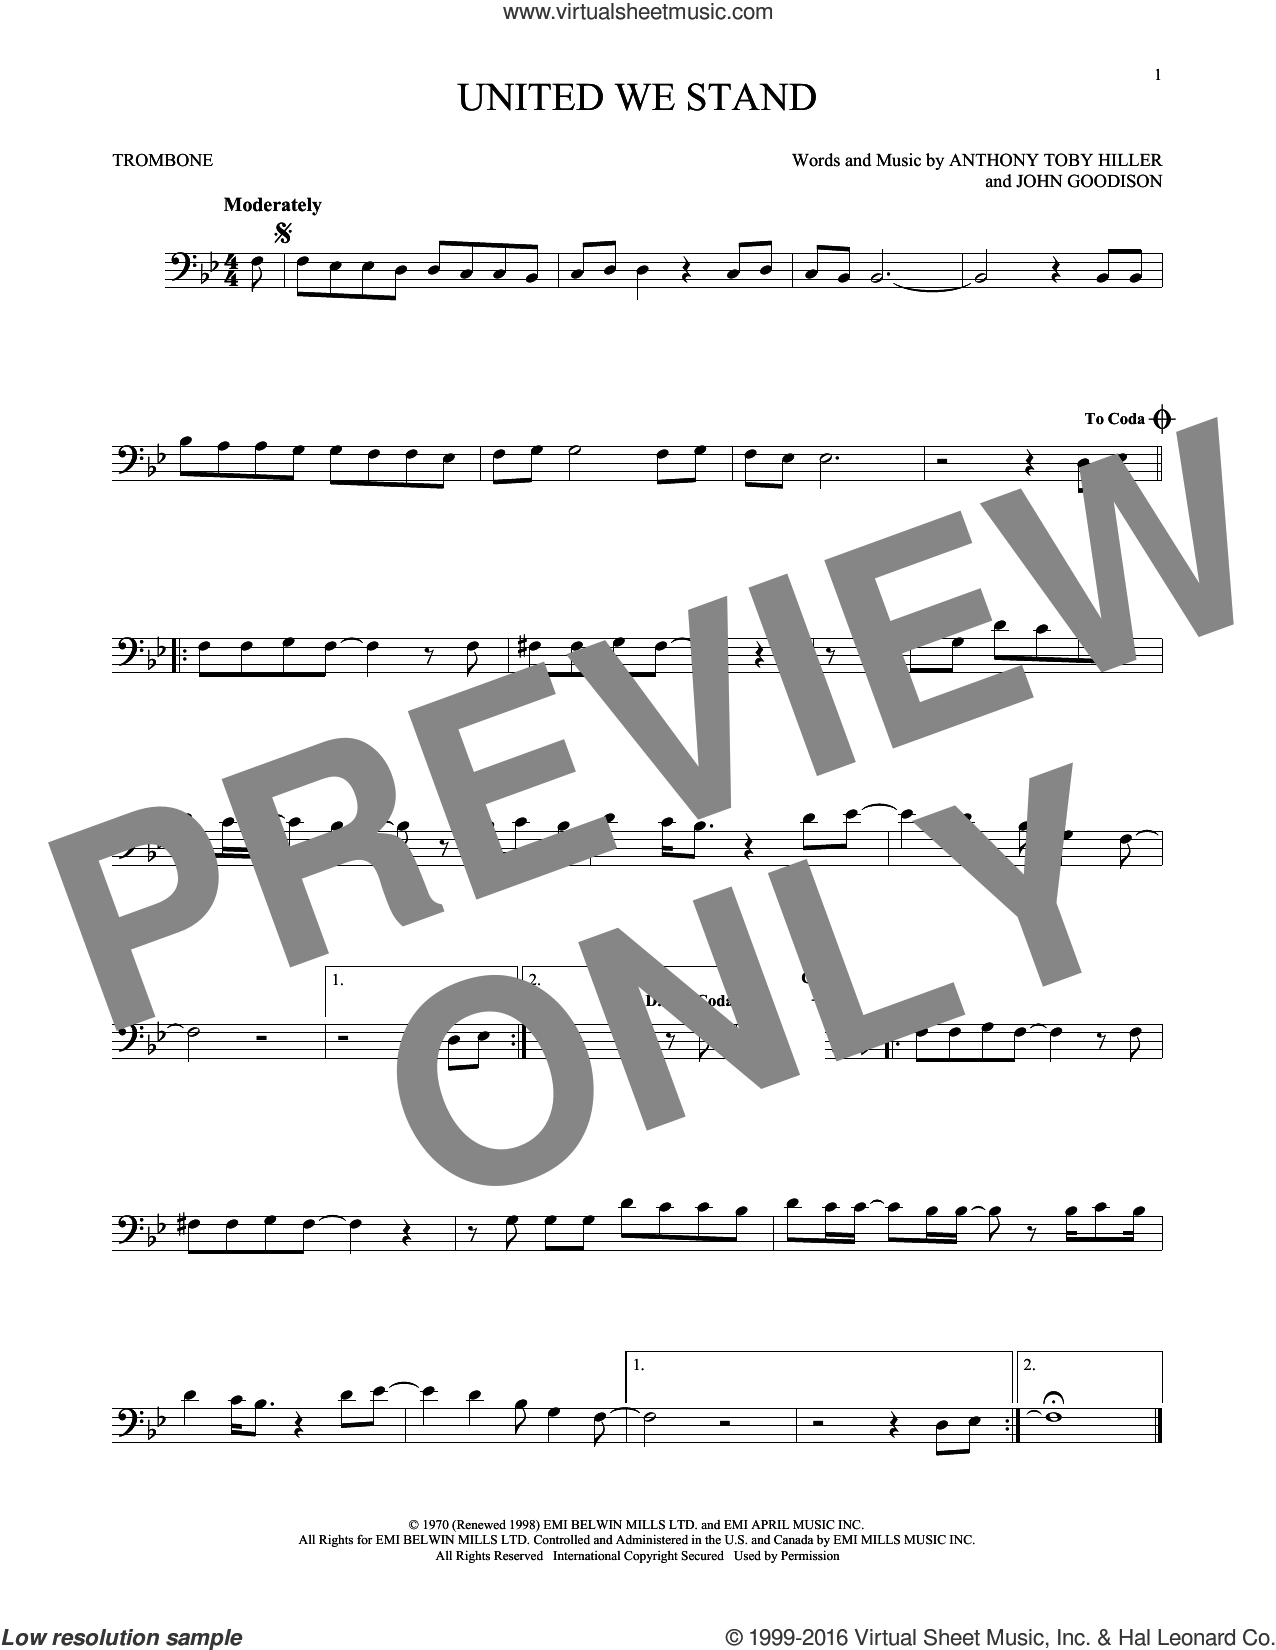 United We Stand sheet music for trombone solo by Brotherhood Of Man, Peter Simons and Toby Hiller, intermediate skill level